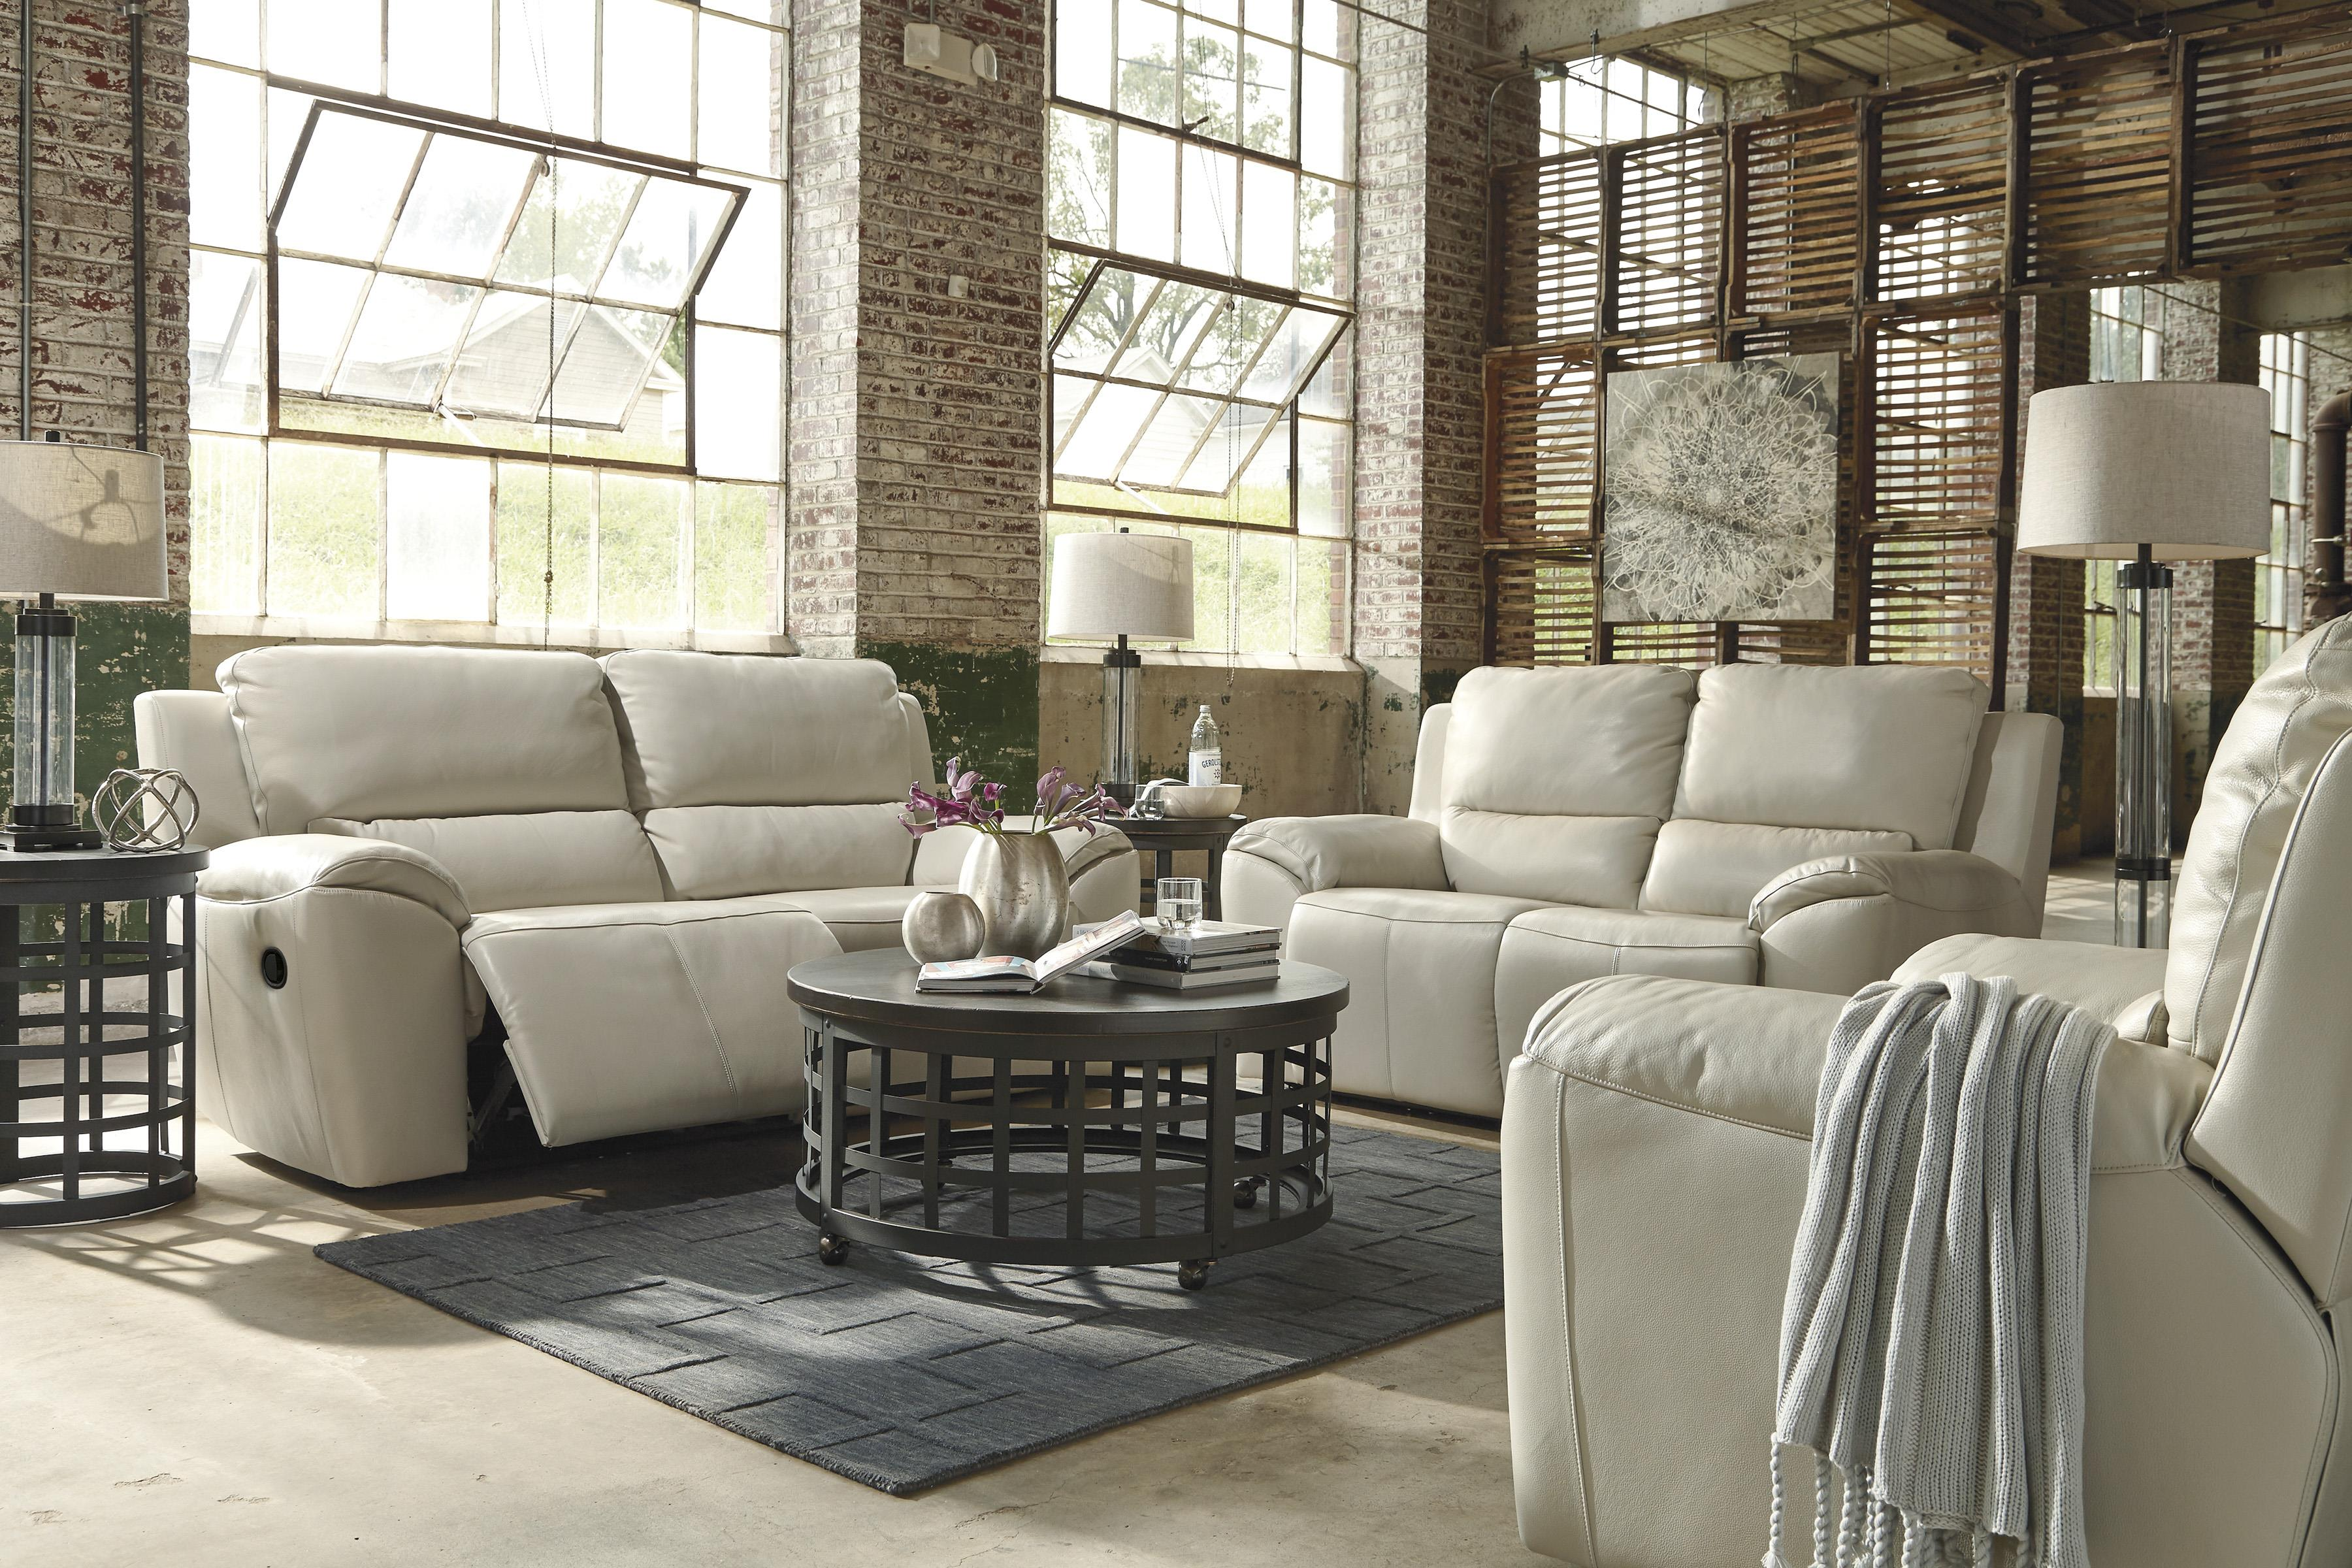 Signature Design by Ashley Valeton Reclining Living Room Group - Item Number: U73500 Living Room Group 3